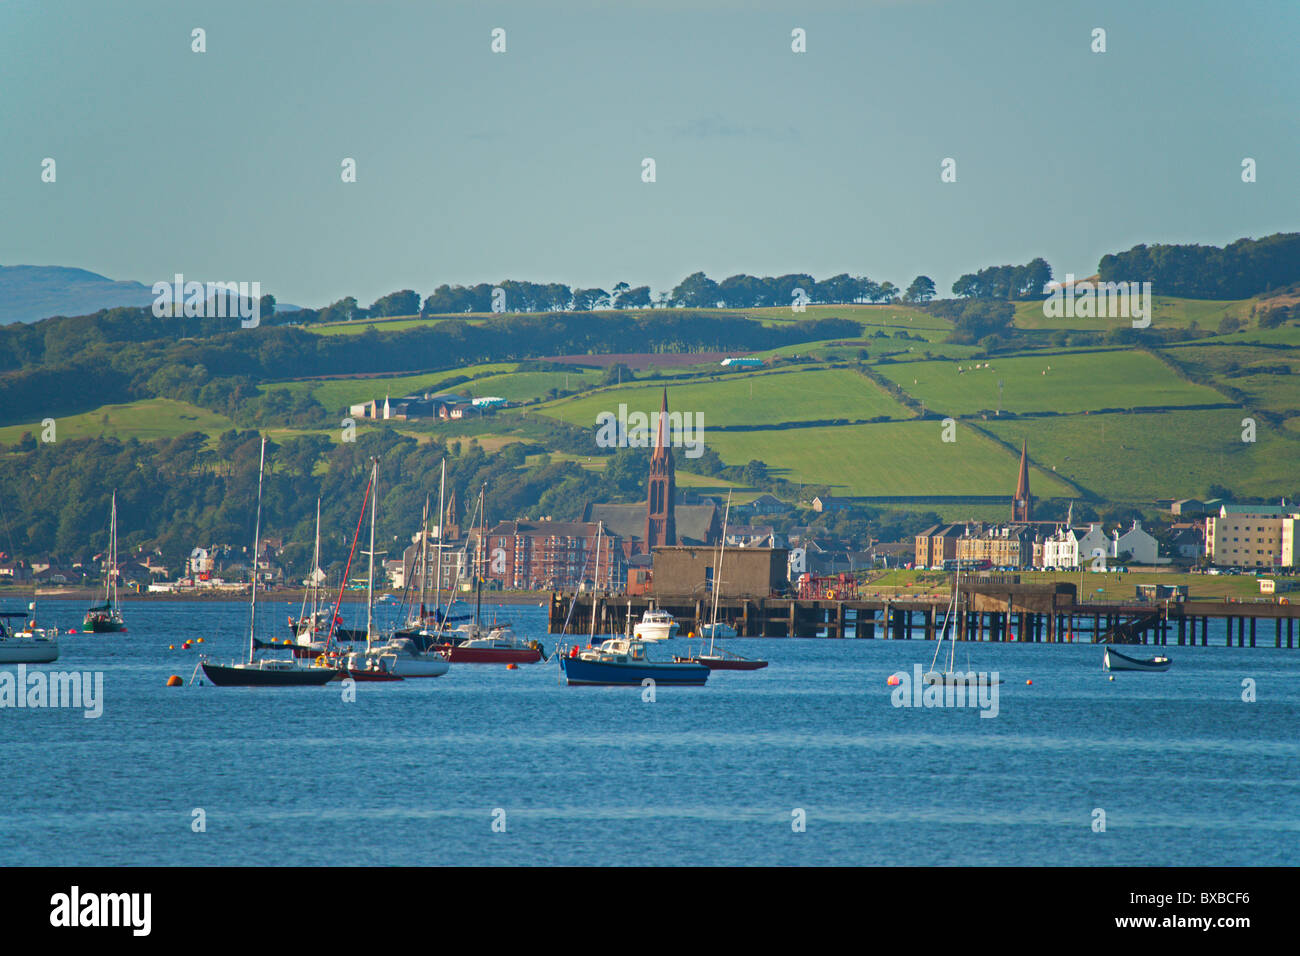 Largs, sea view, Ayrshire, Strathclyde, Scotland, August 2010 - Stock Image